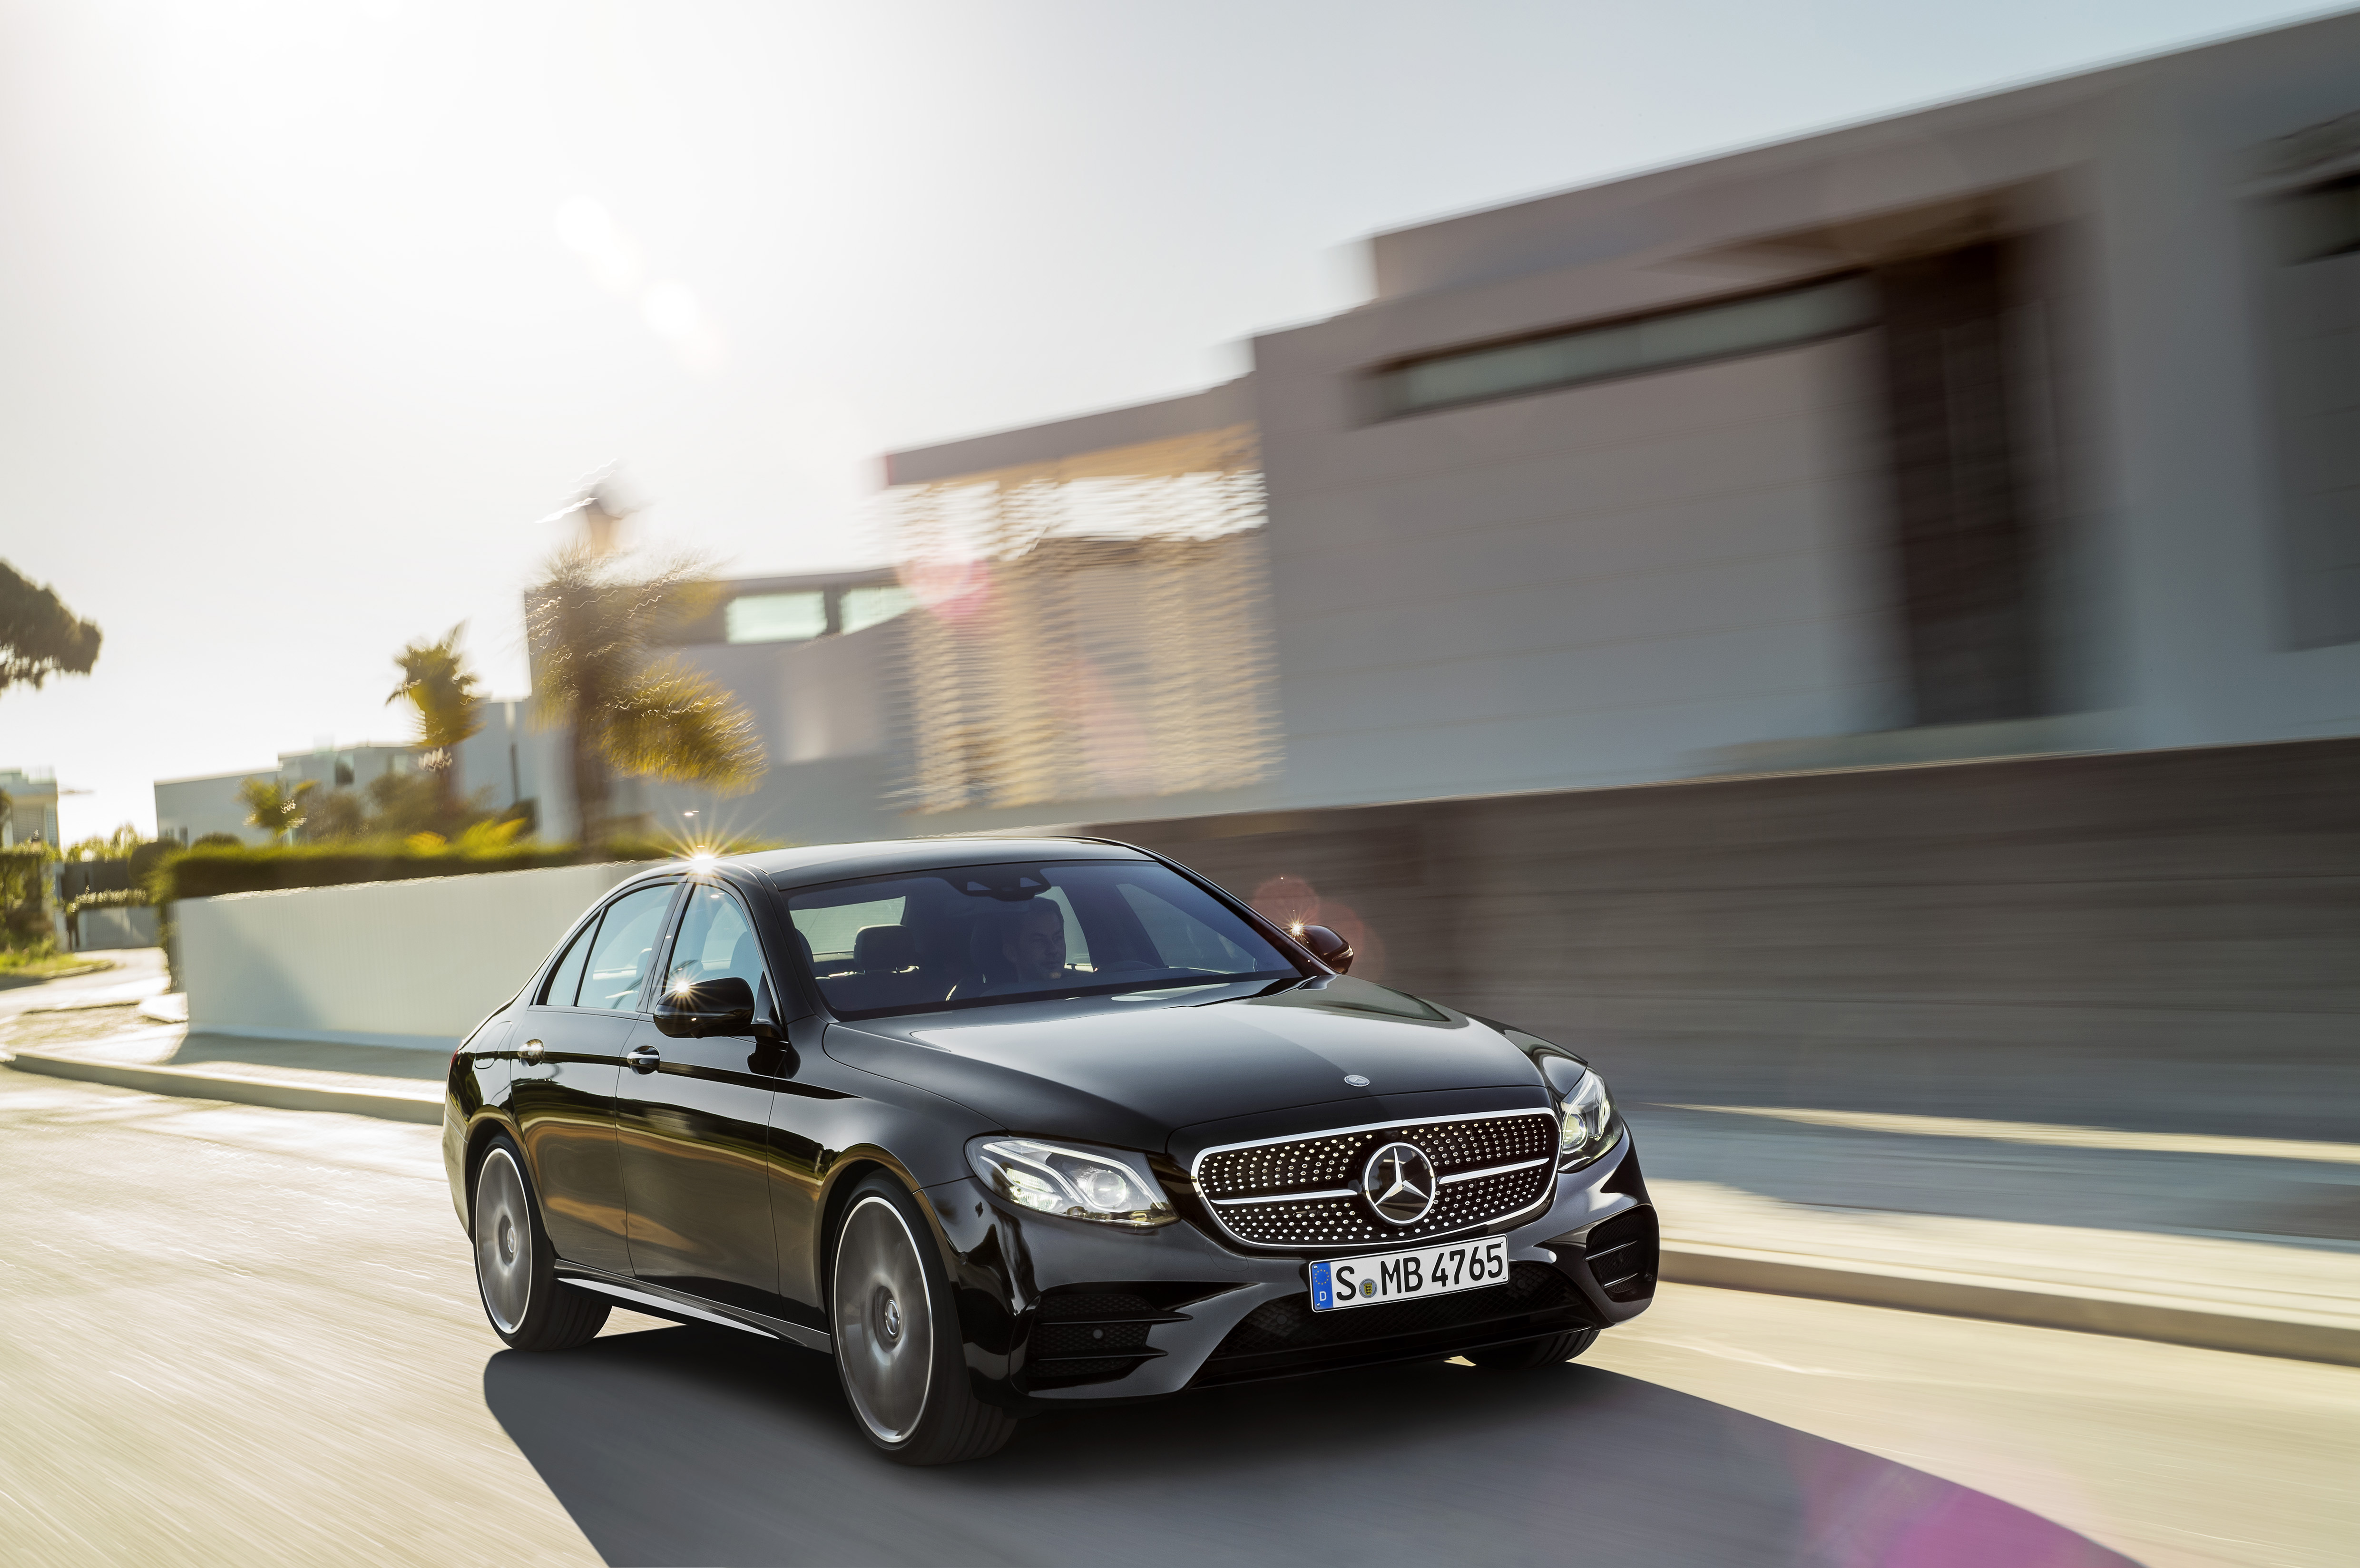 https://s1.cdn.autoevolution.com/images/news/mercedes-amg-e43-4matic-looking-good-in-black-in-first-official-video-105691_1.jpg